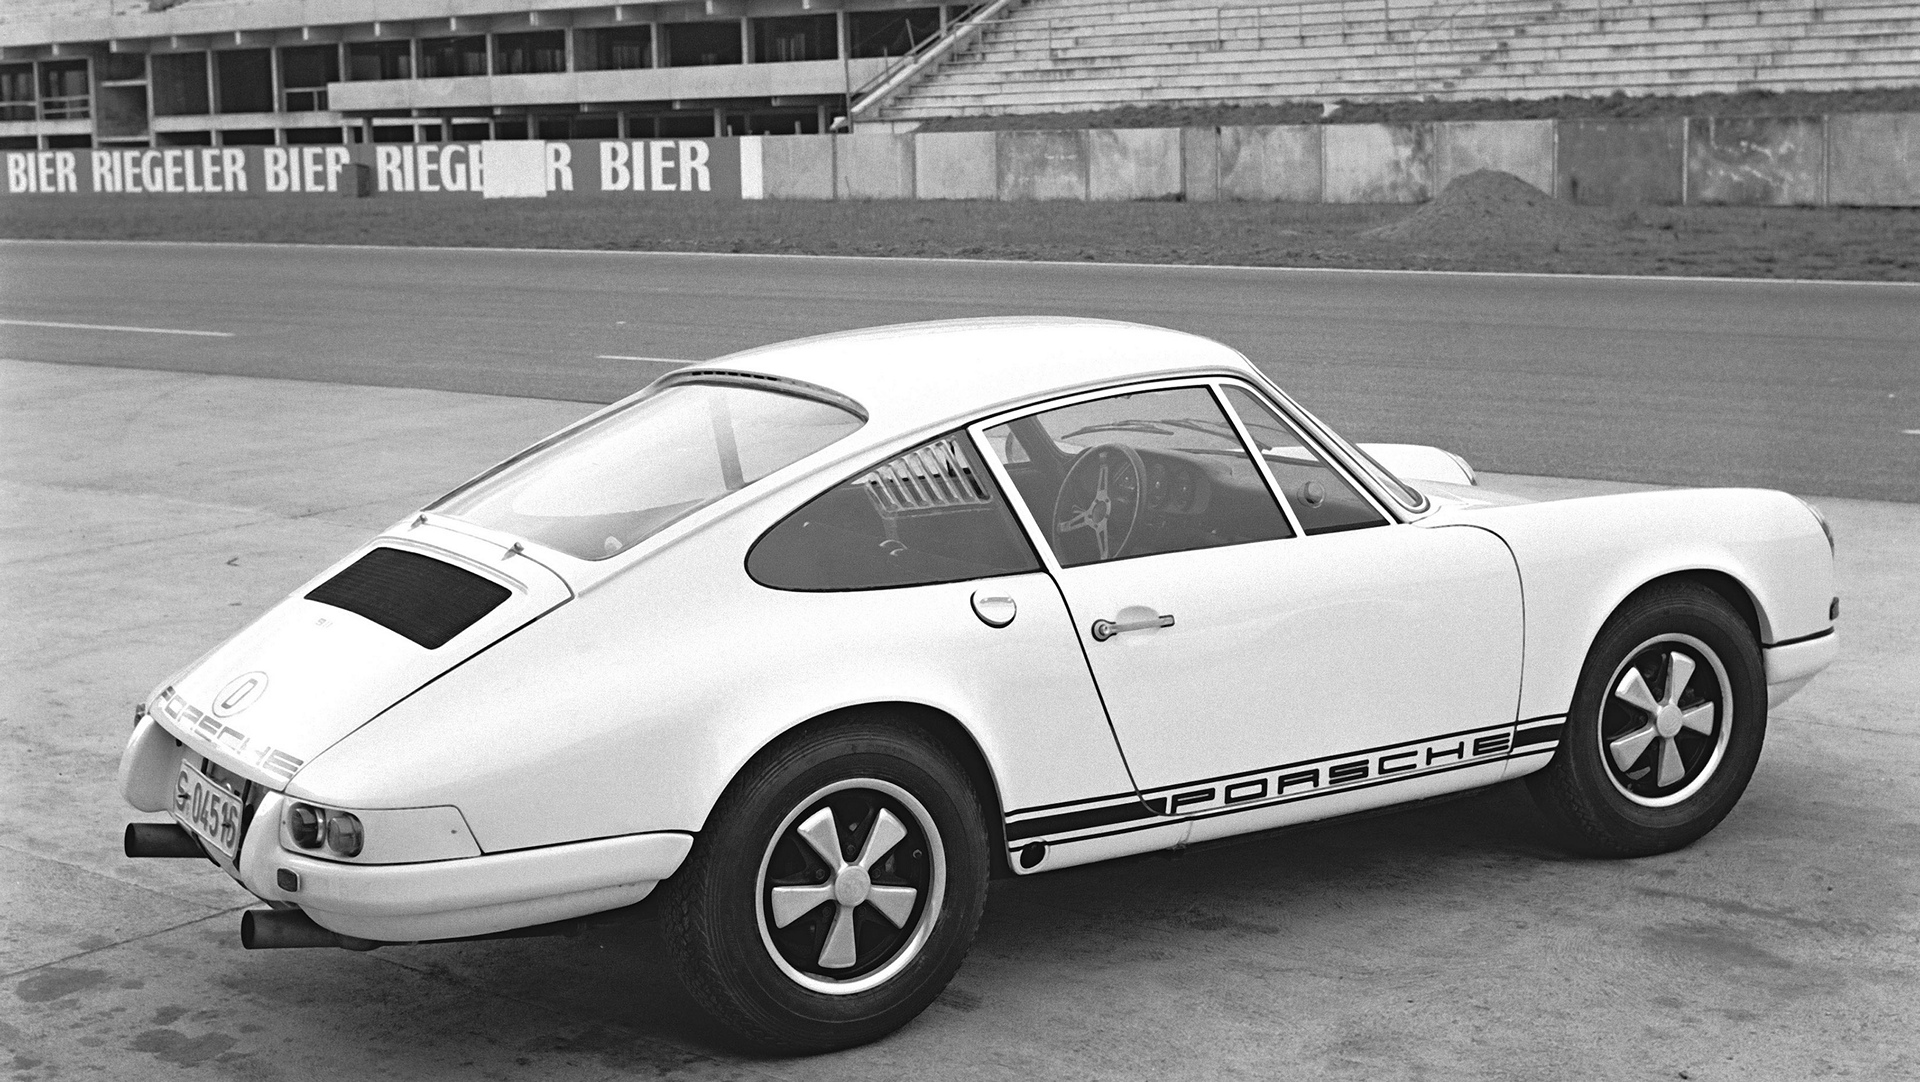 Porsche 911 R, Press preview in Hockenheim, December 1967 © Dr. Ing. h.c. F. Porsche AG